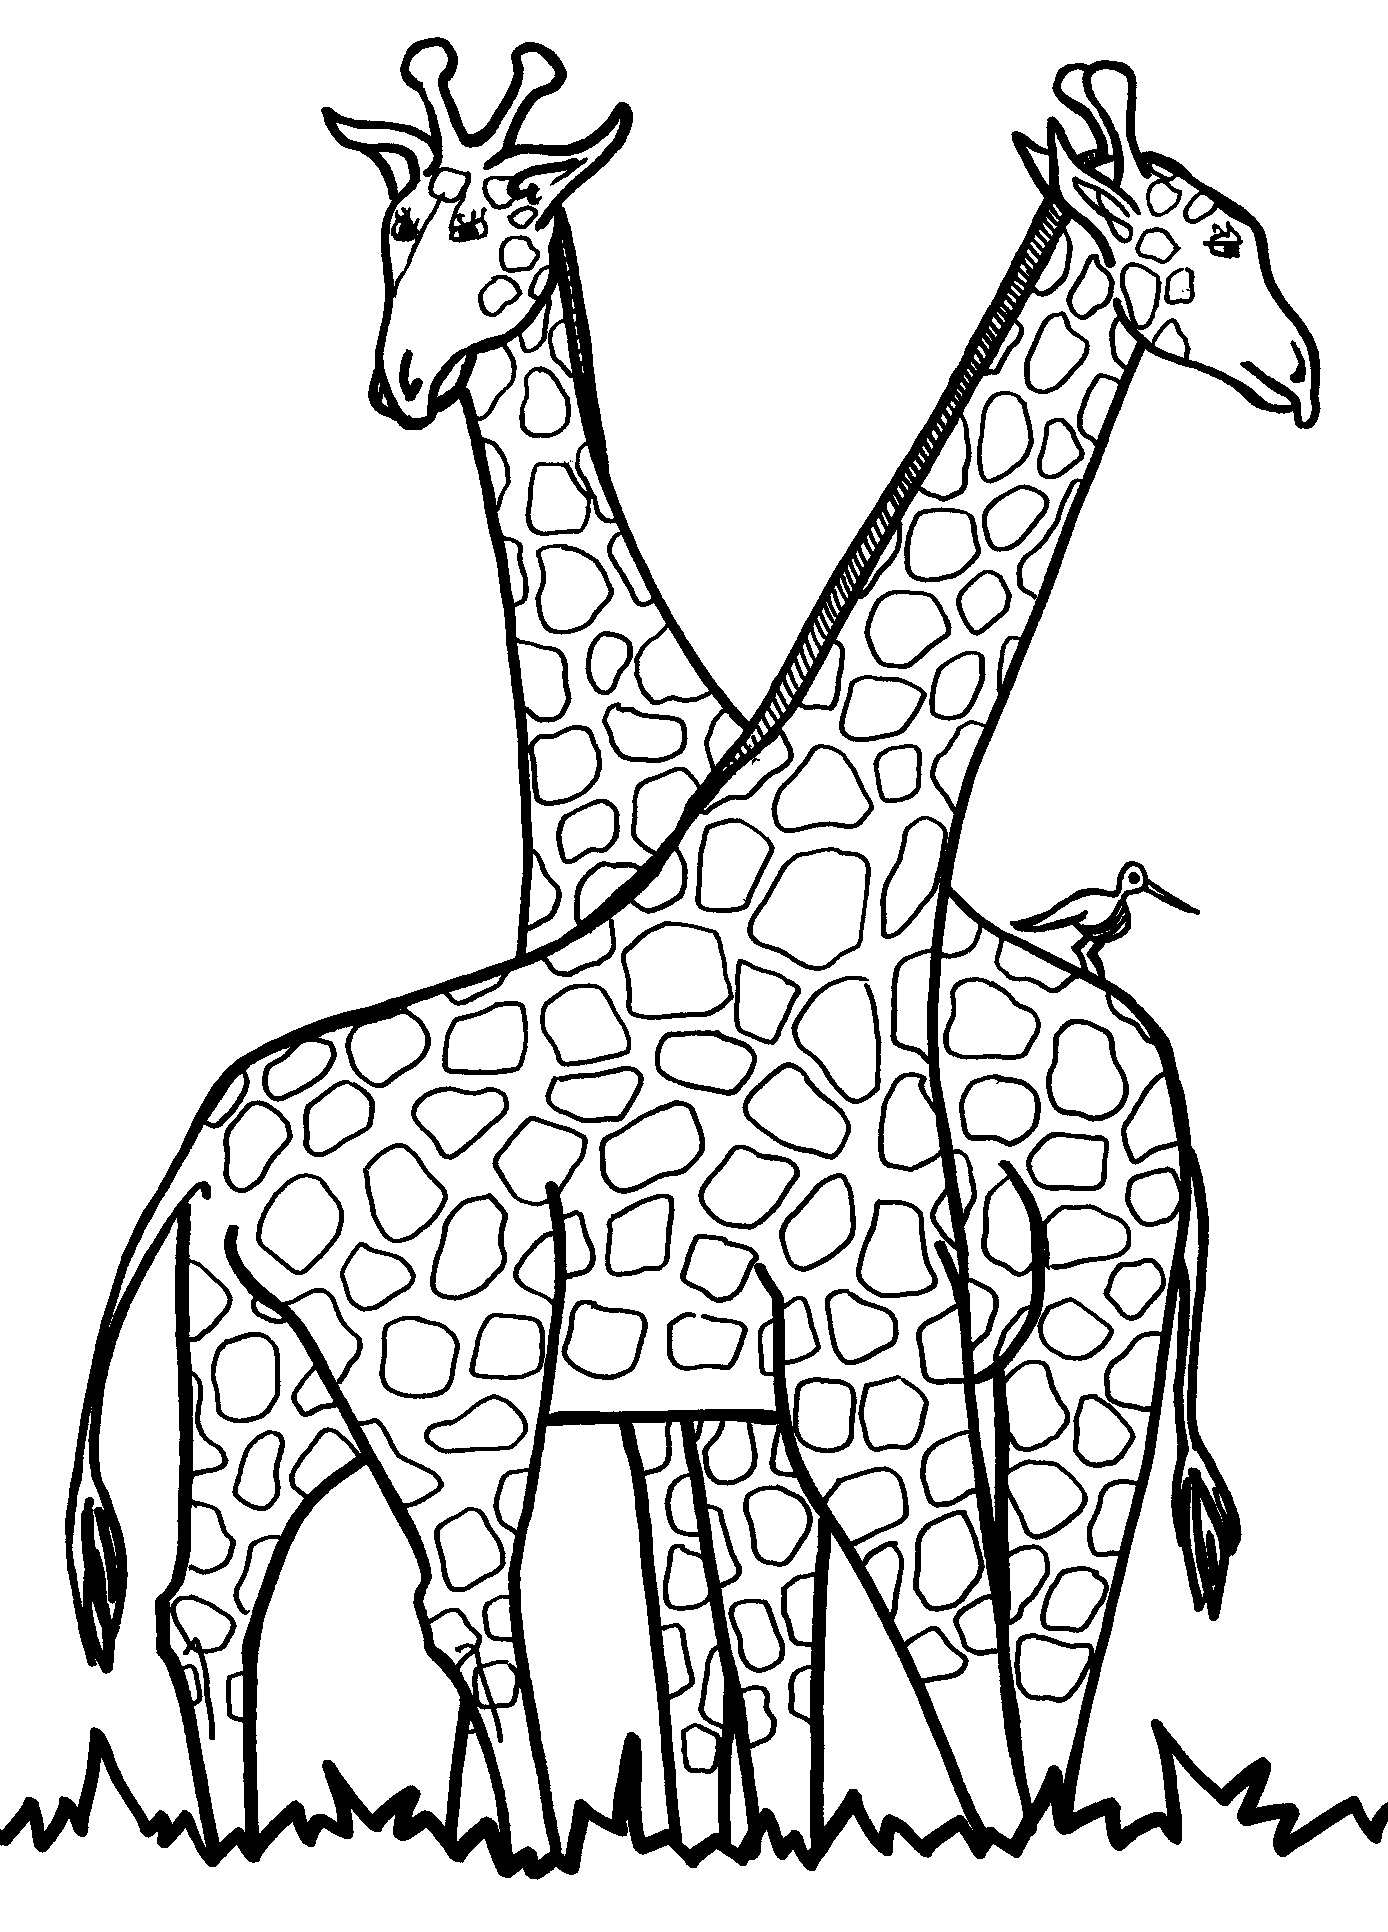 colouring pages of giraffe giraffes coloring pages to download and print for free of pages colouring giraffe